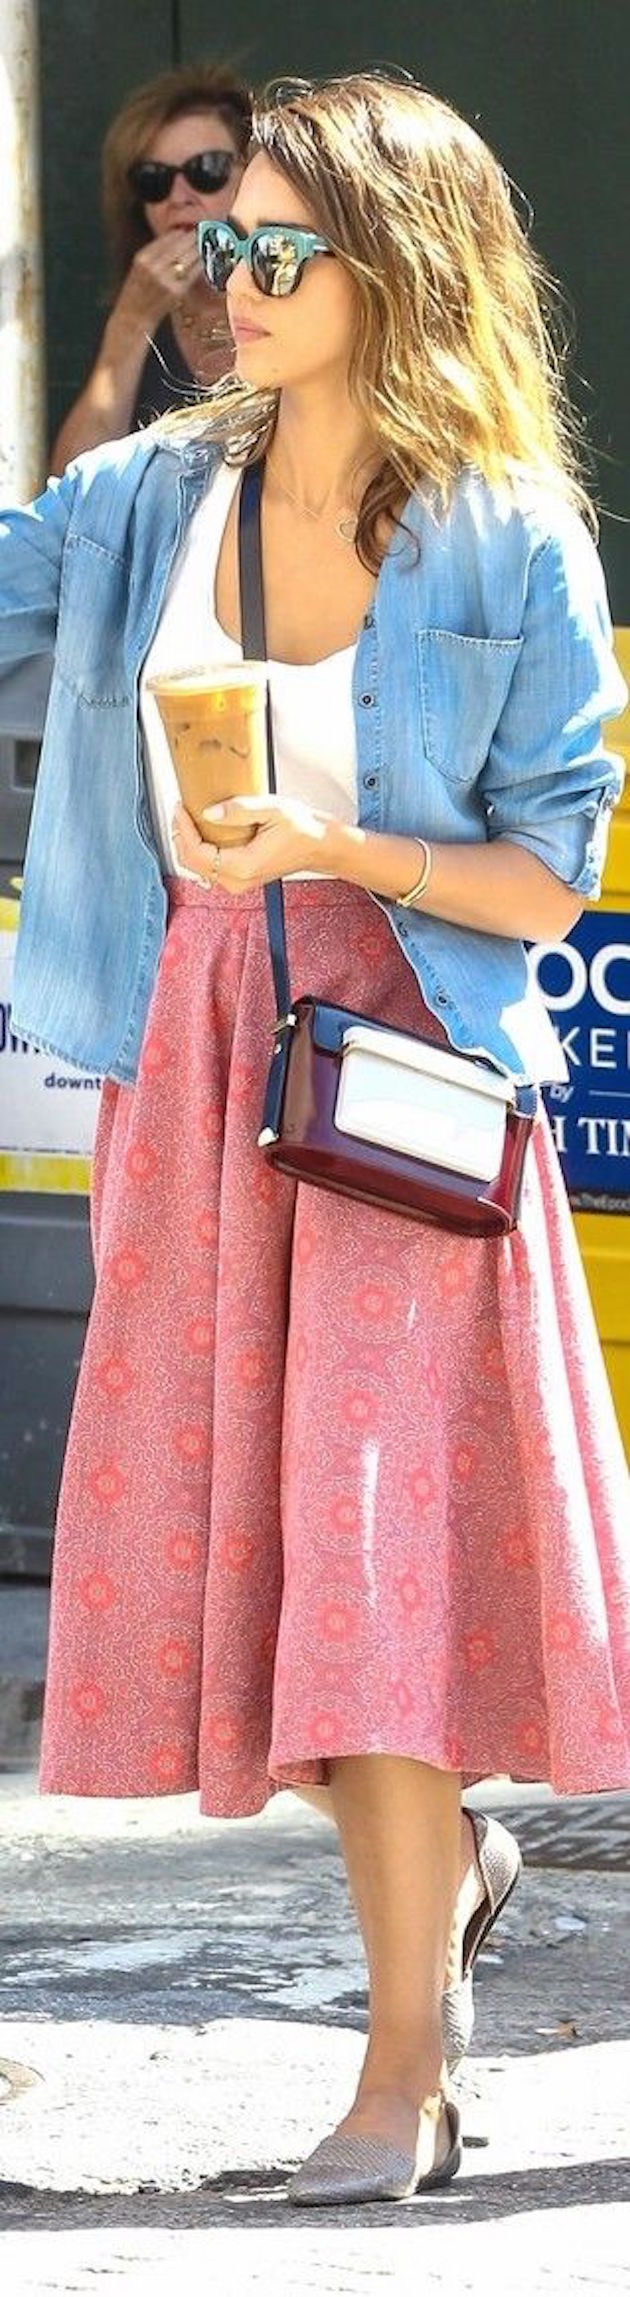 jessica alba in midi skirt with cool bag